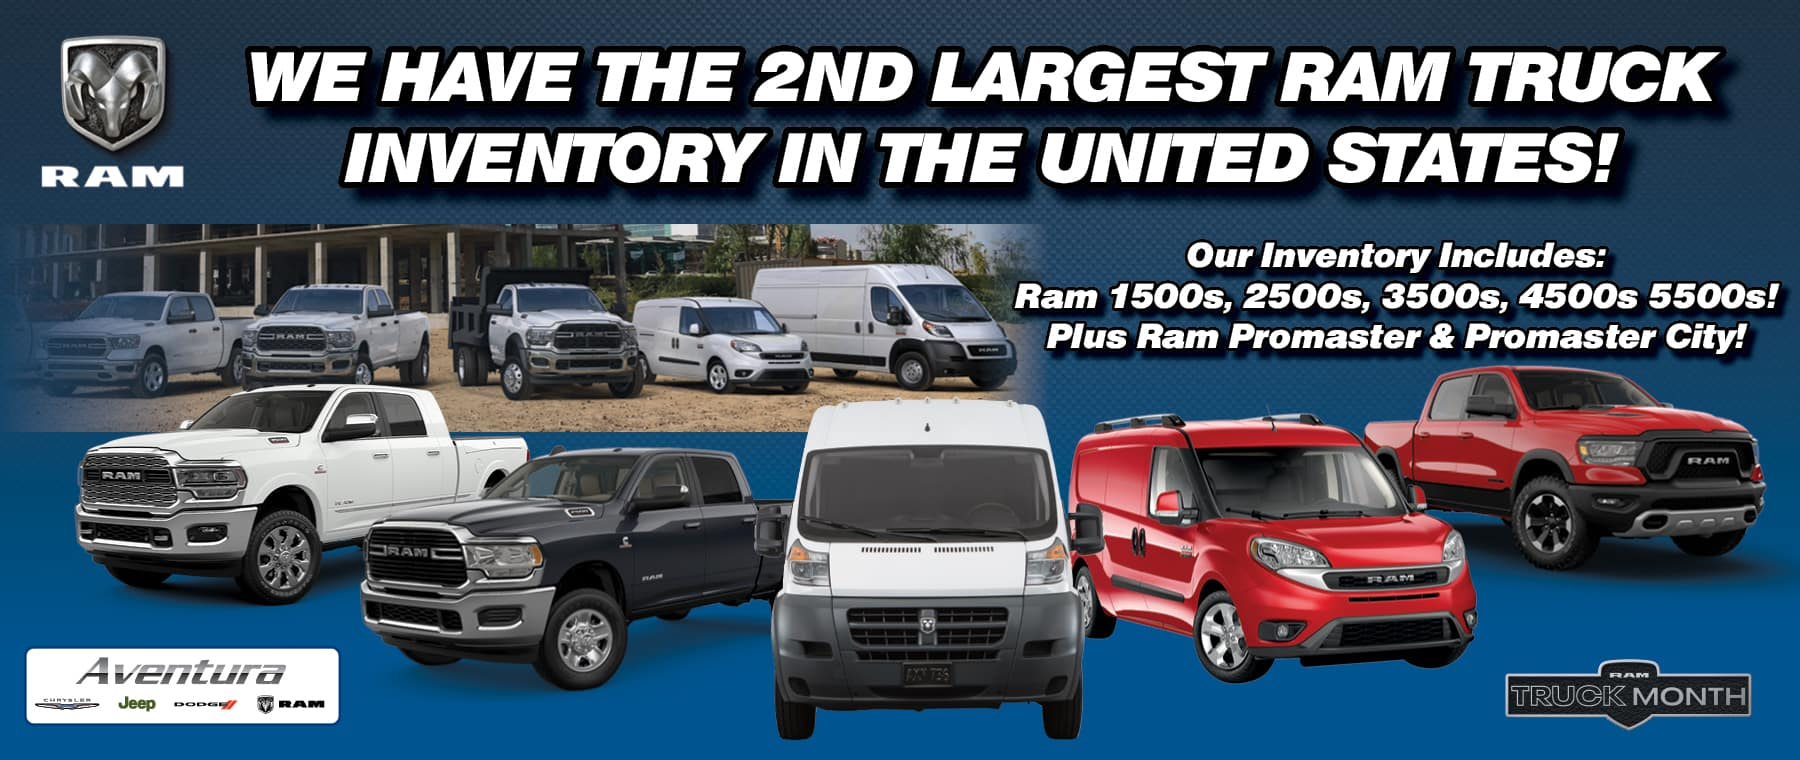 2nd Best Ram Inventory in the country